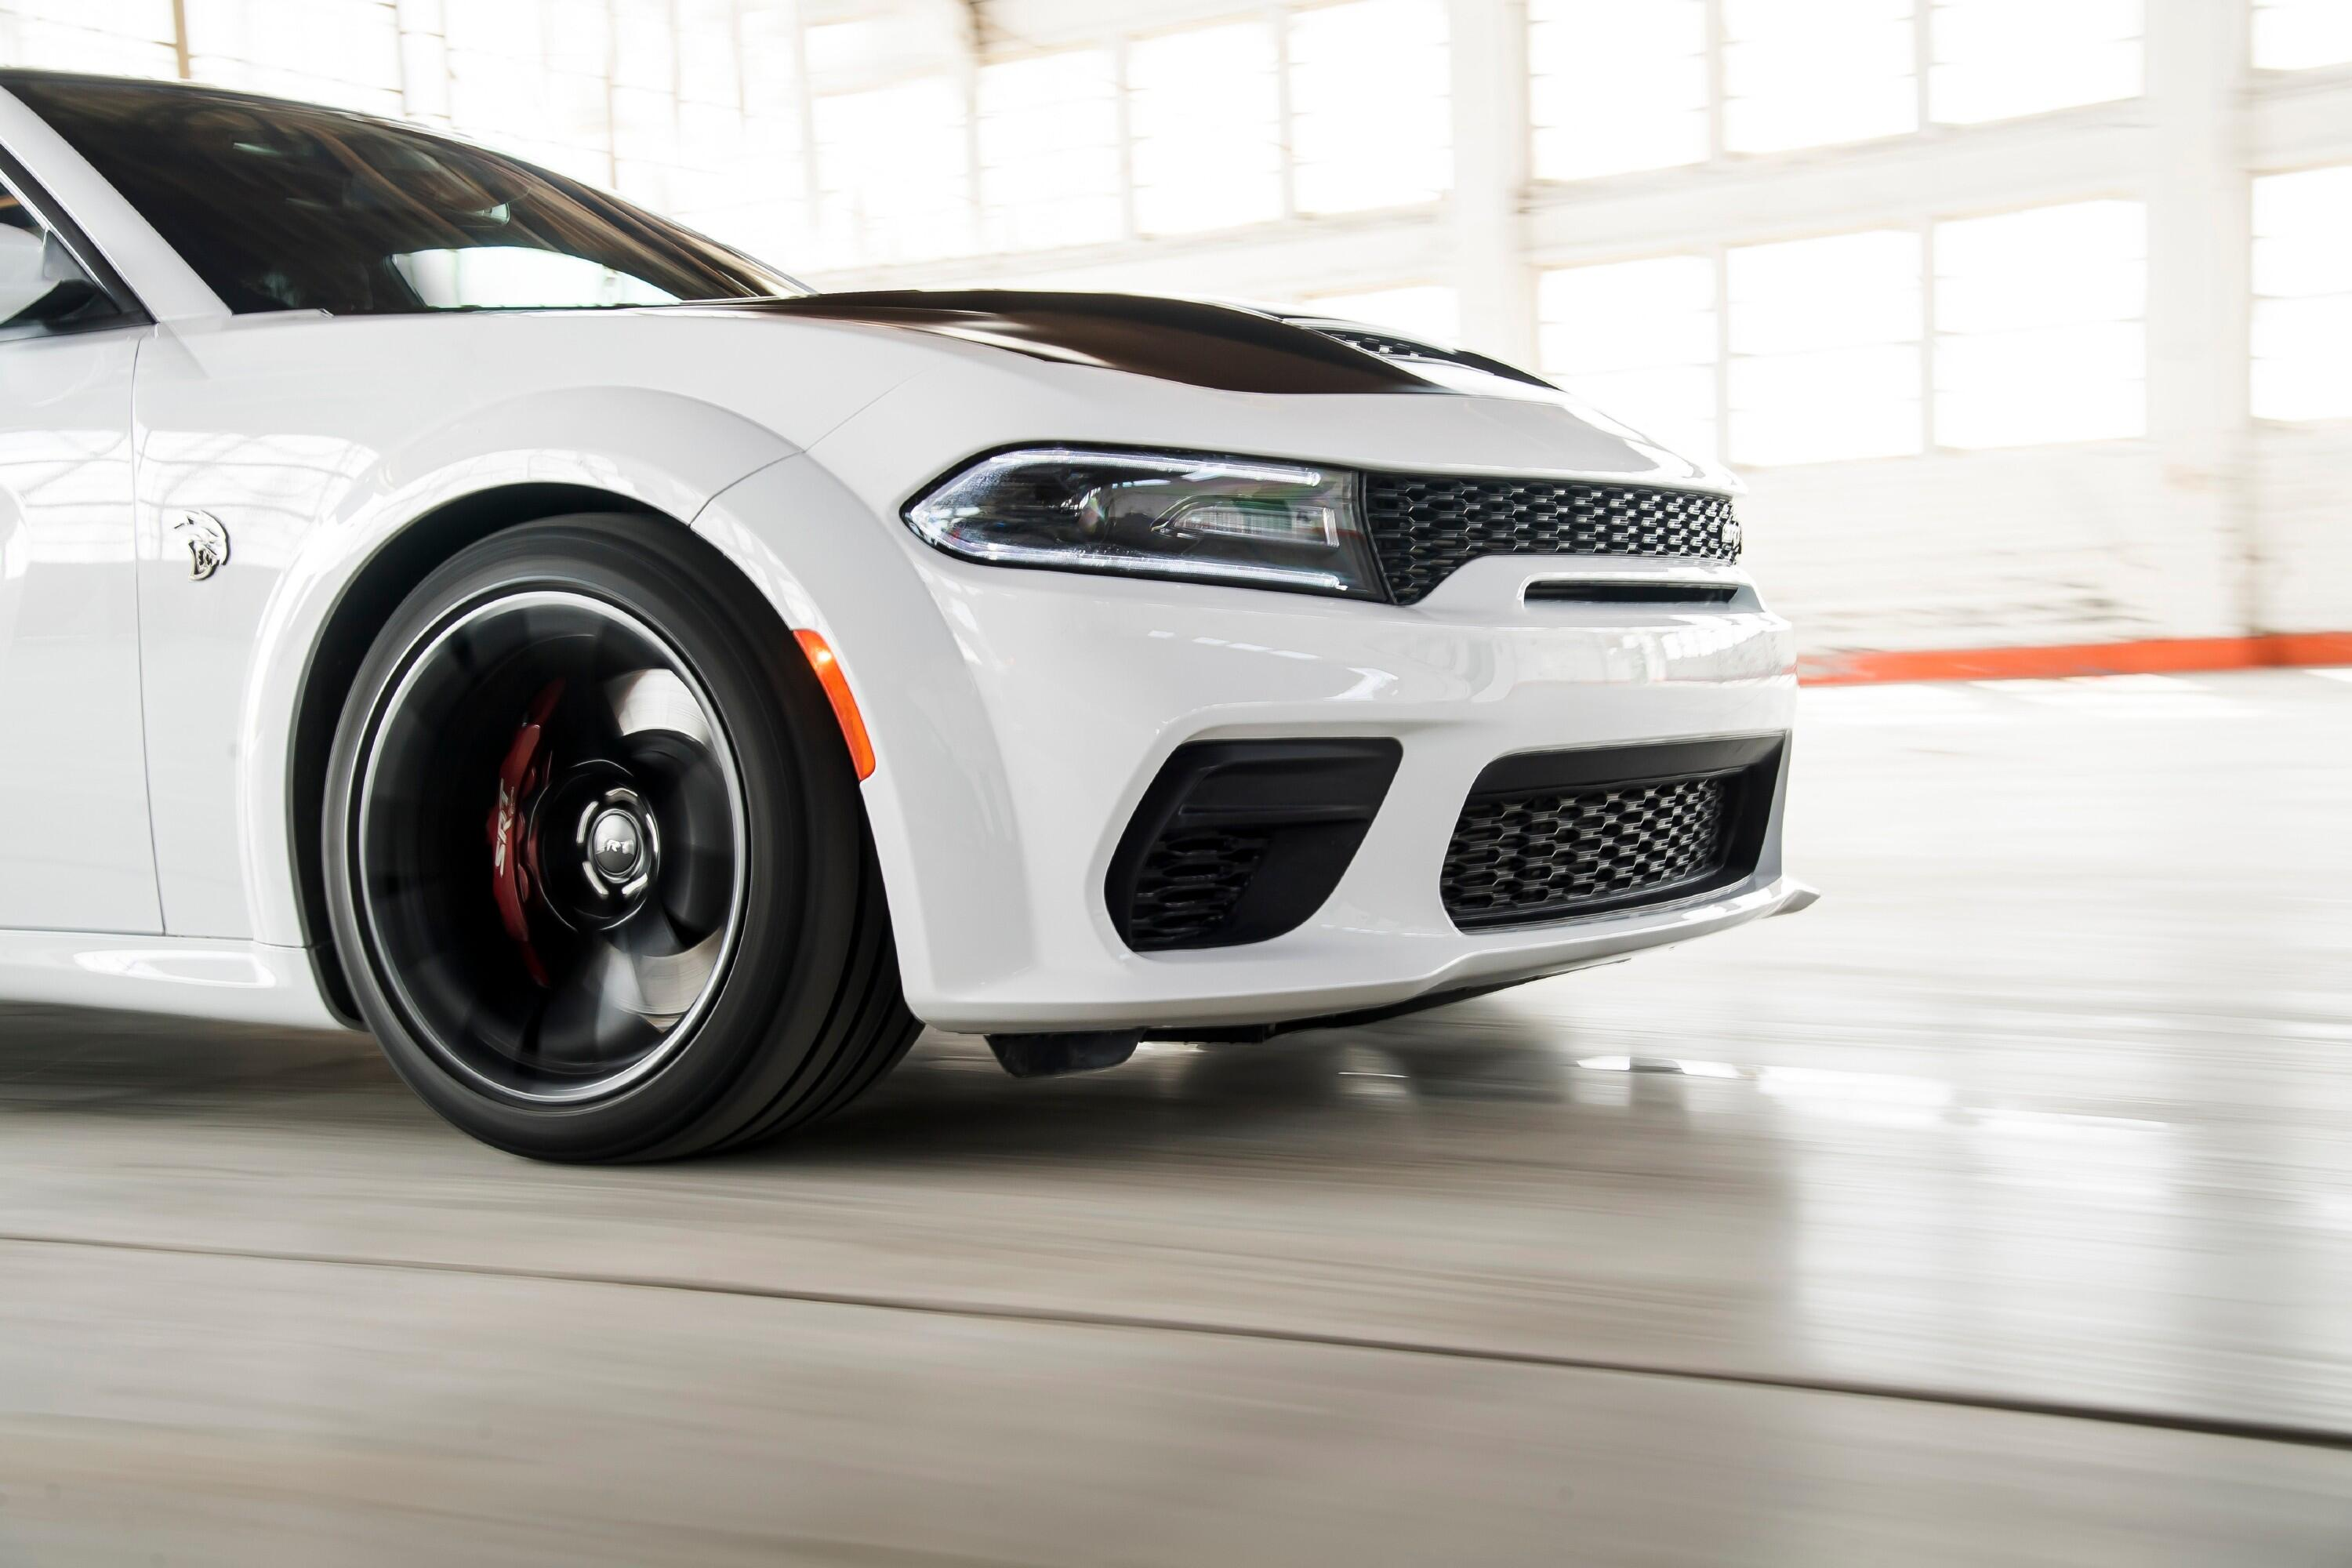 2021-dodge-charger-redeye-033